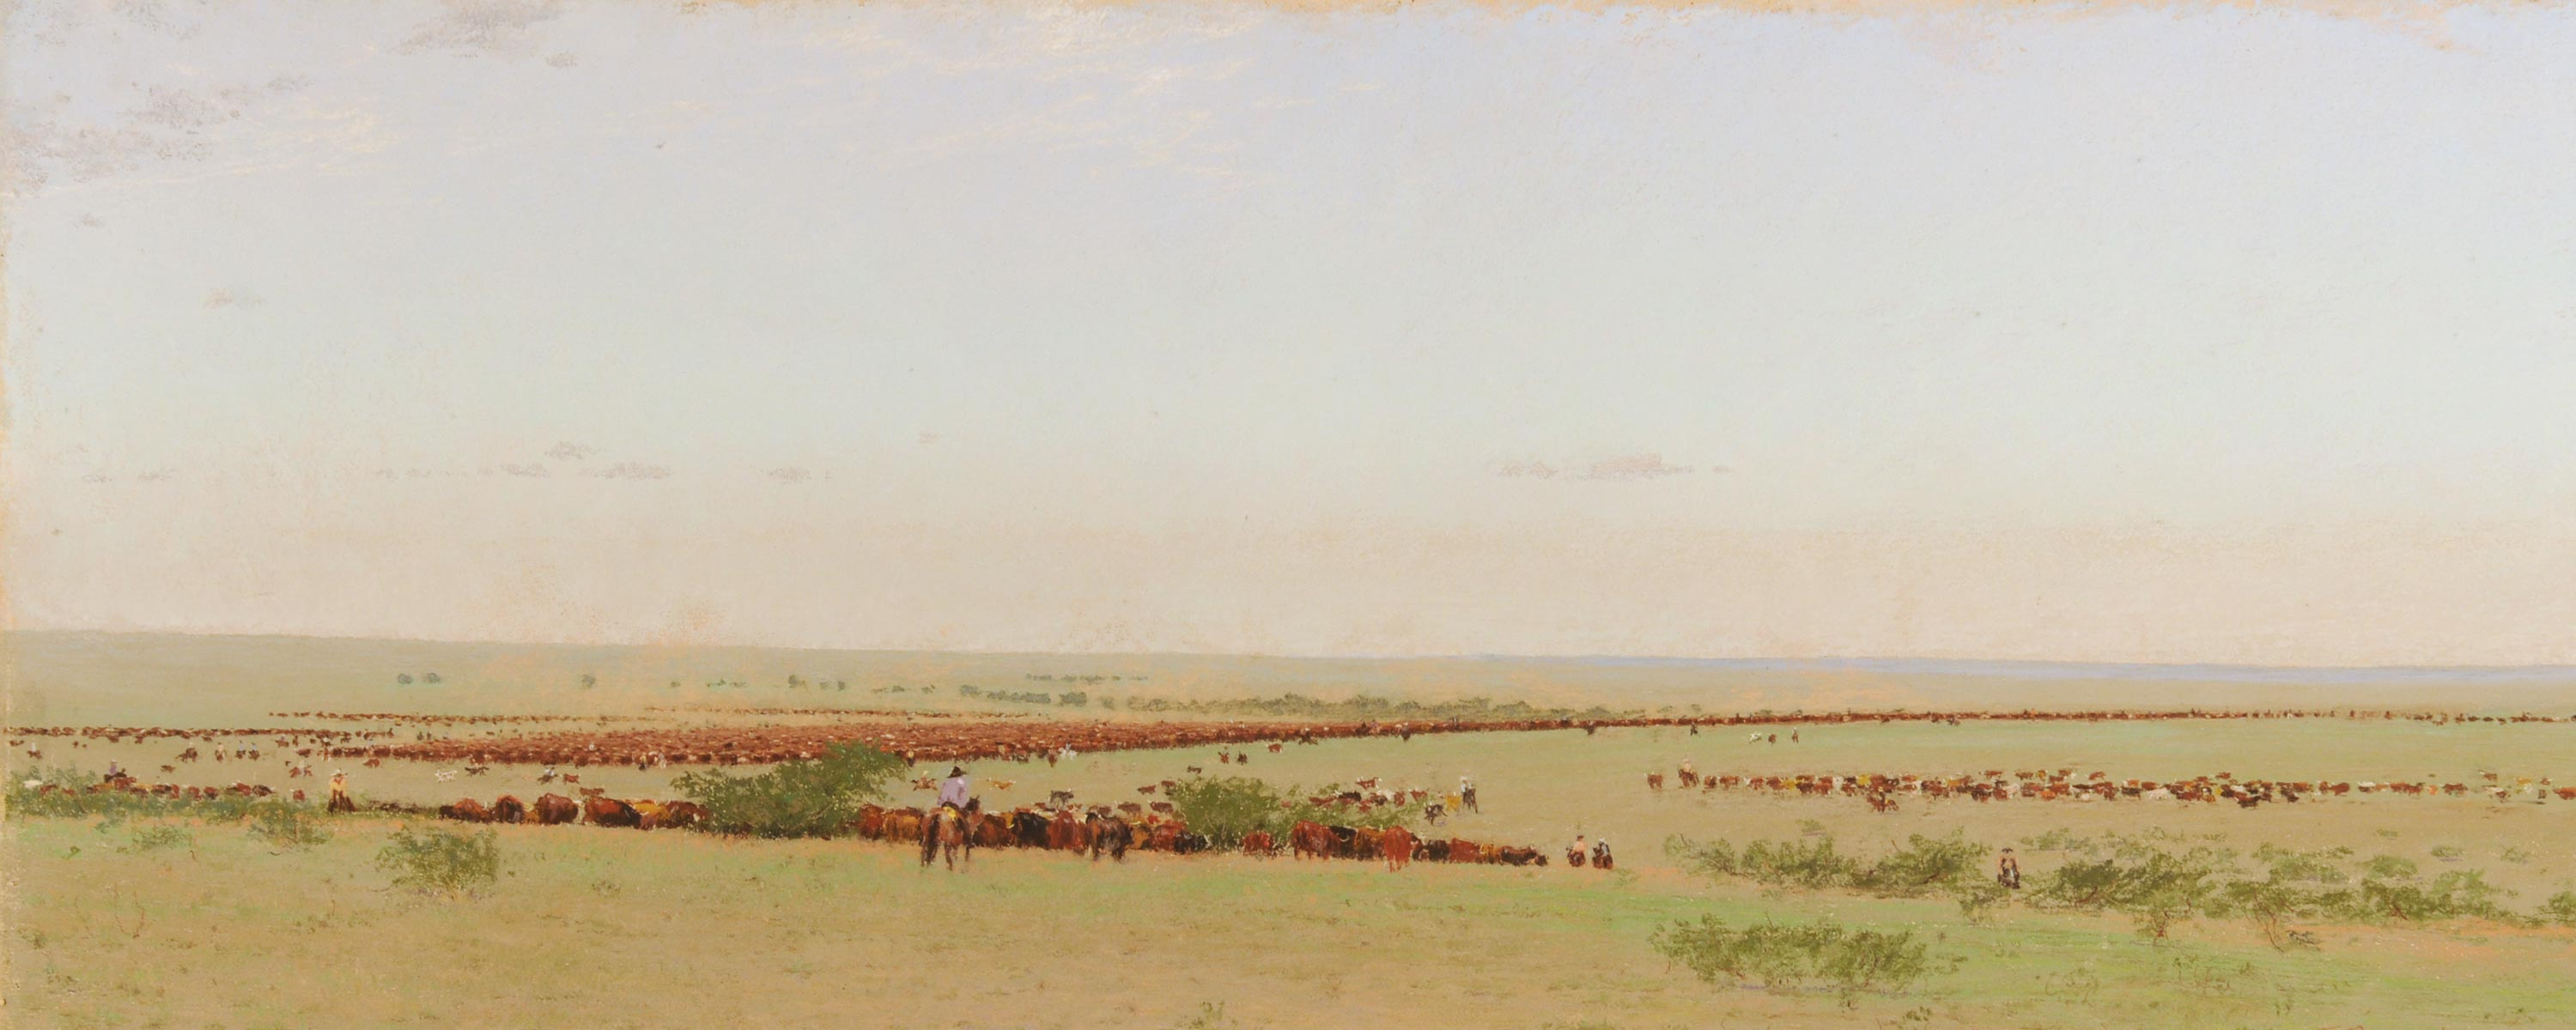 The O Roundup, Texas, 1888. 1894, Frank Reaugh (American, 1860-1945). Pastel on paper mounted on canvas. 18 5/8 x 43 7/8 inches. Panhandle-Planes Historical Museum, Canyon, Texas.